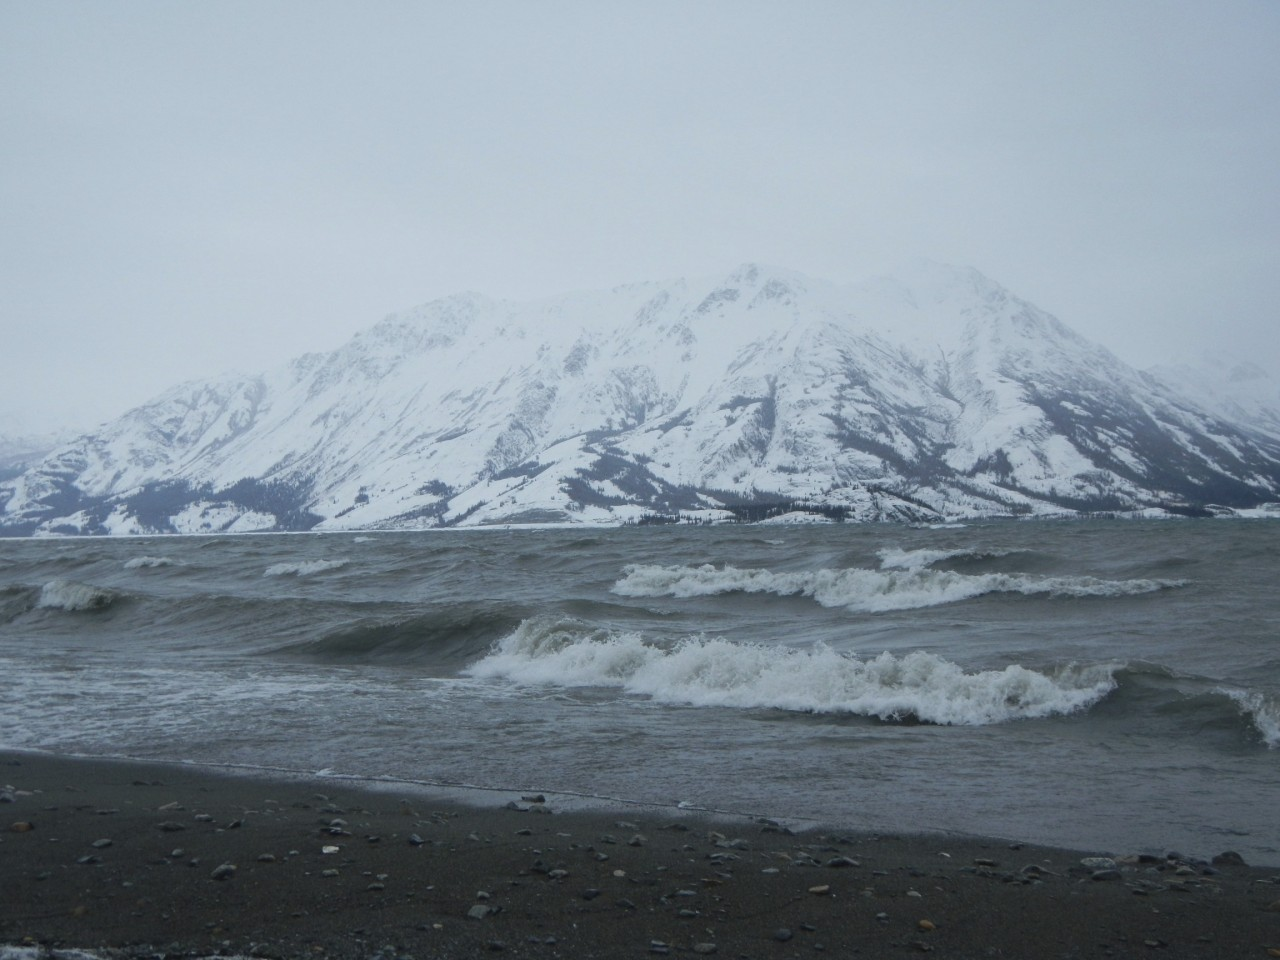 Kluane Lake with waves